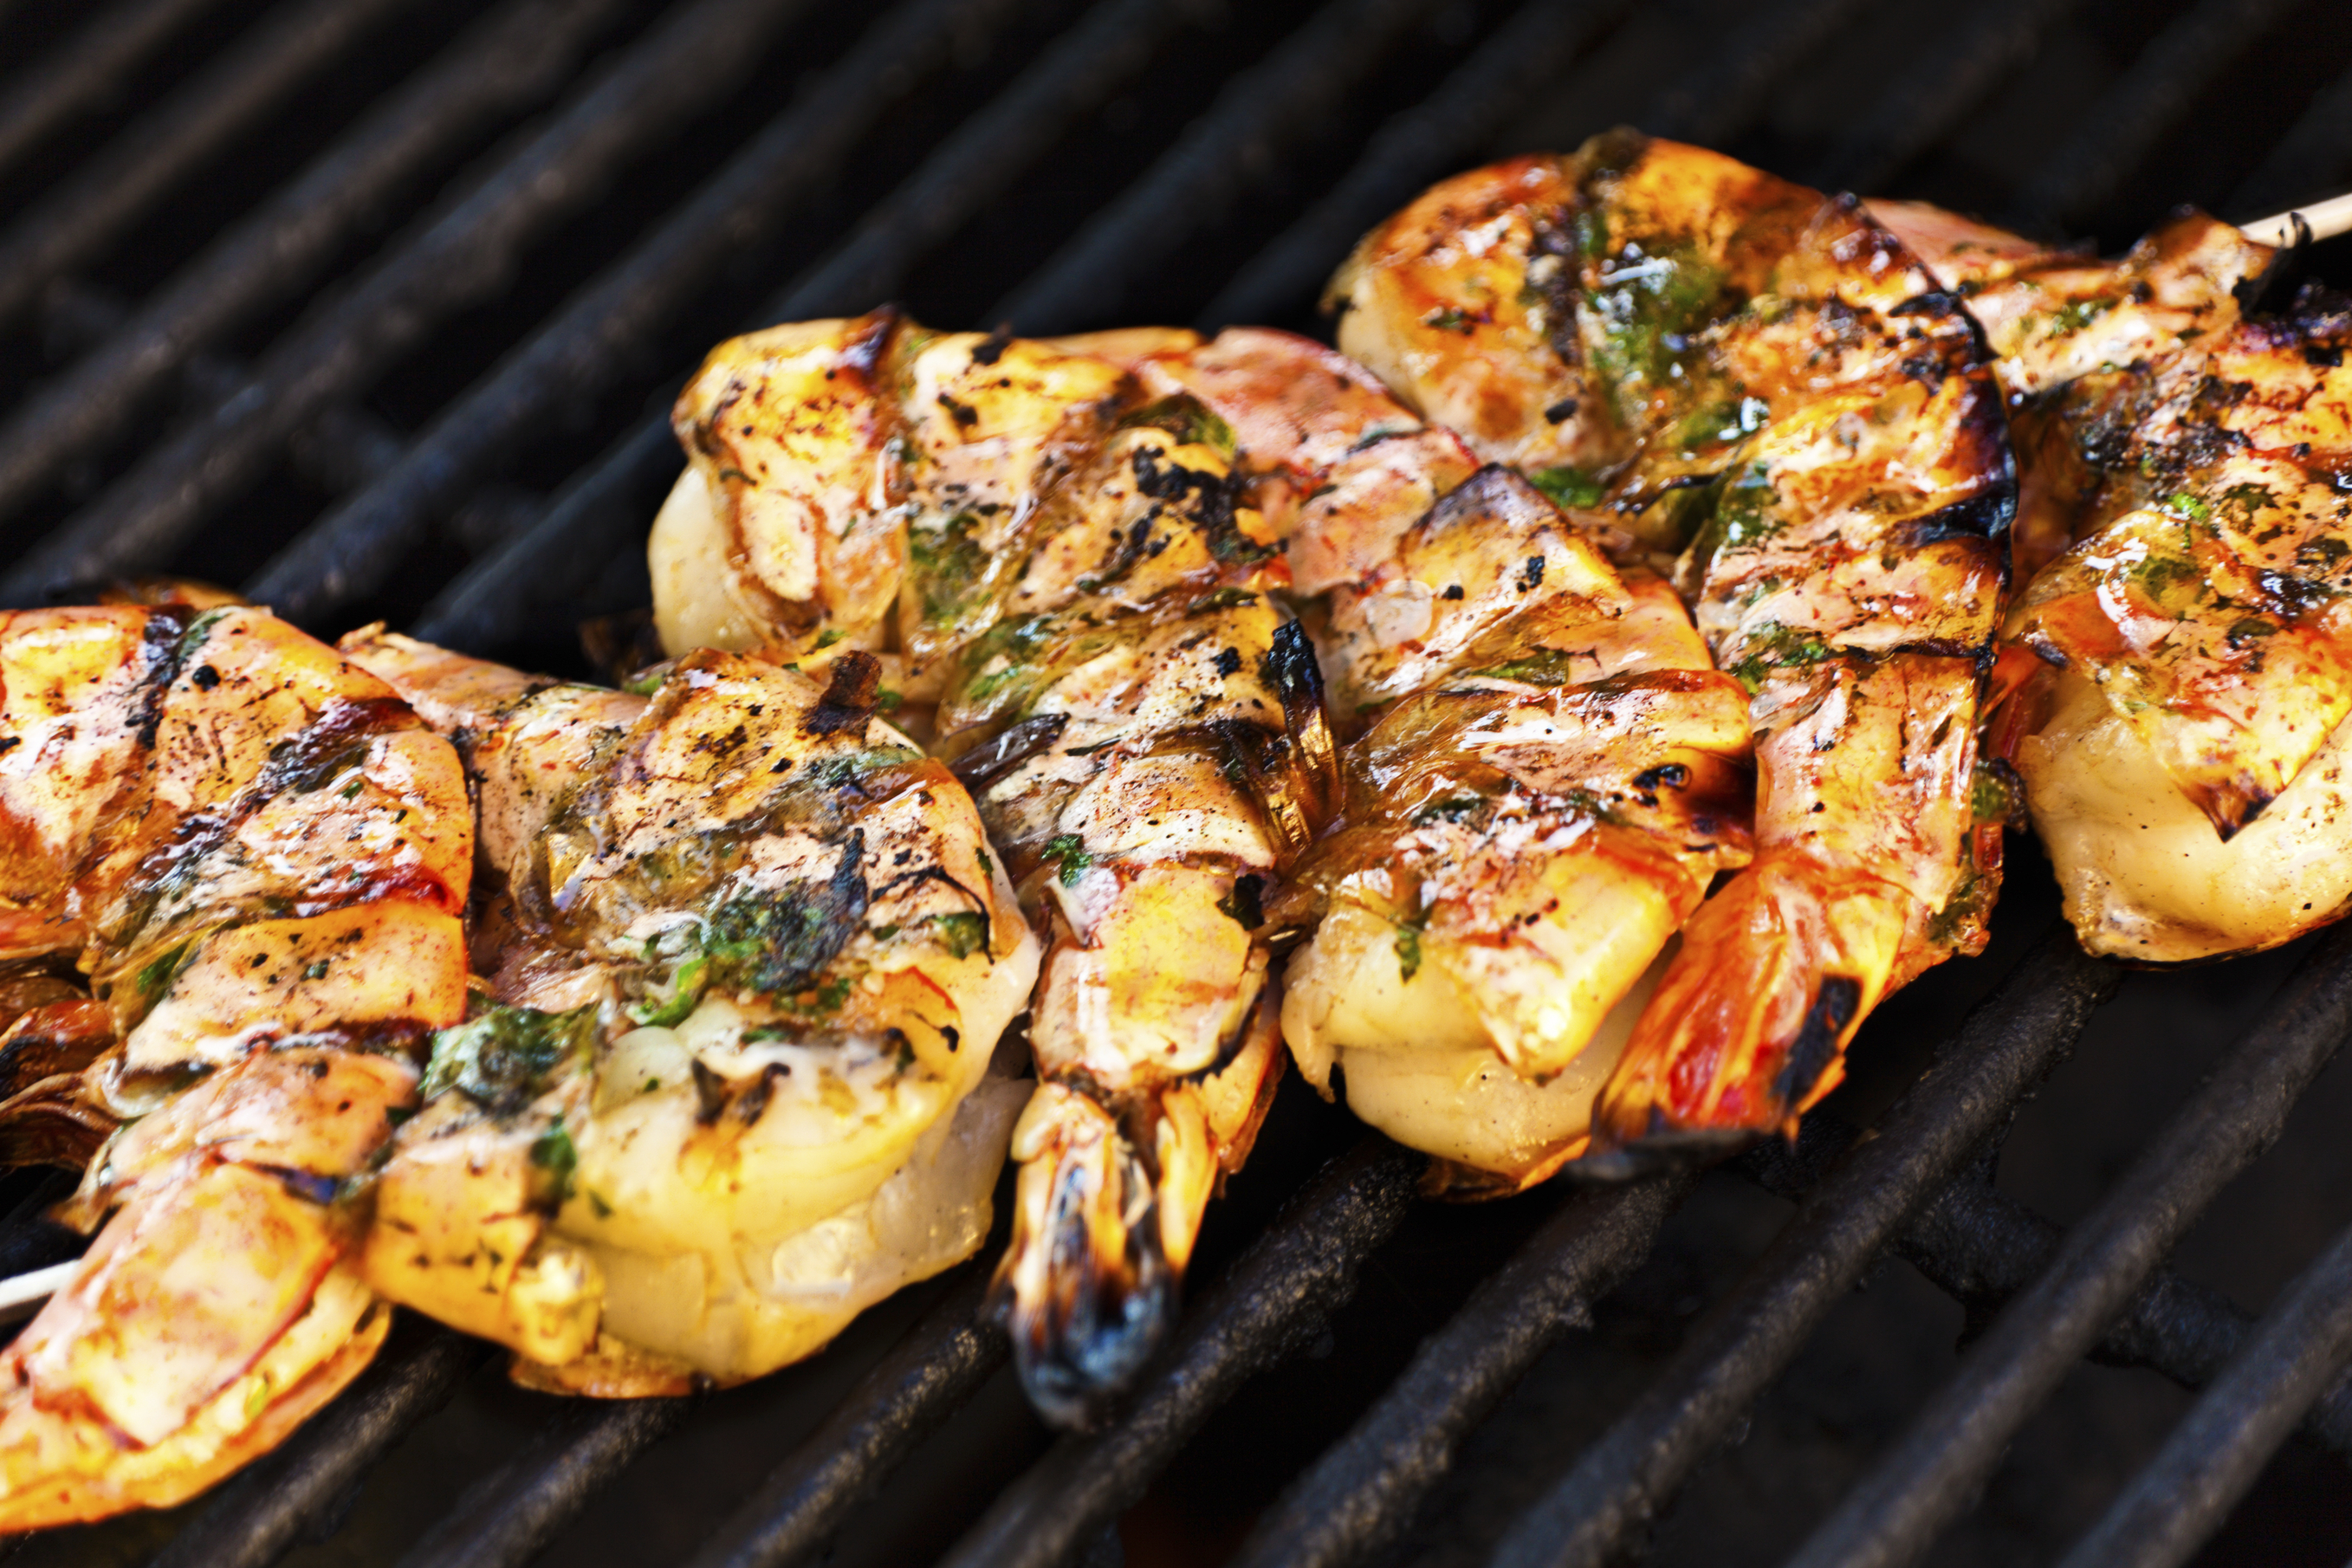 A skewer of large shrimps or prawns on a barbecue grill, ready and just before service. The shrimps are marinated in herbs and oil and caramelized in high temperature. Grill shrimps, a poplar seafood in many culture worldwide. Photographed close-up in horizontal format.